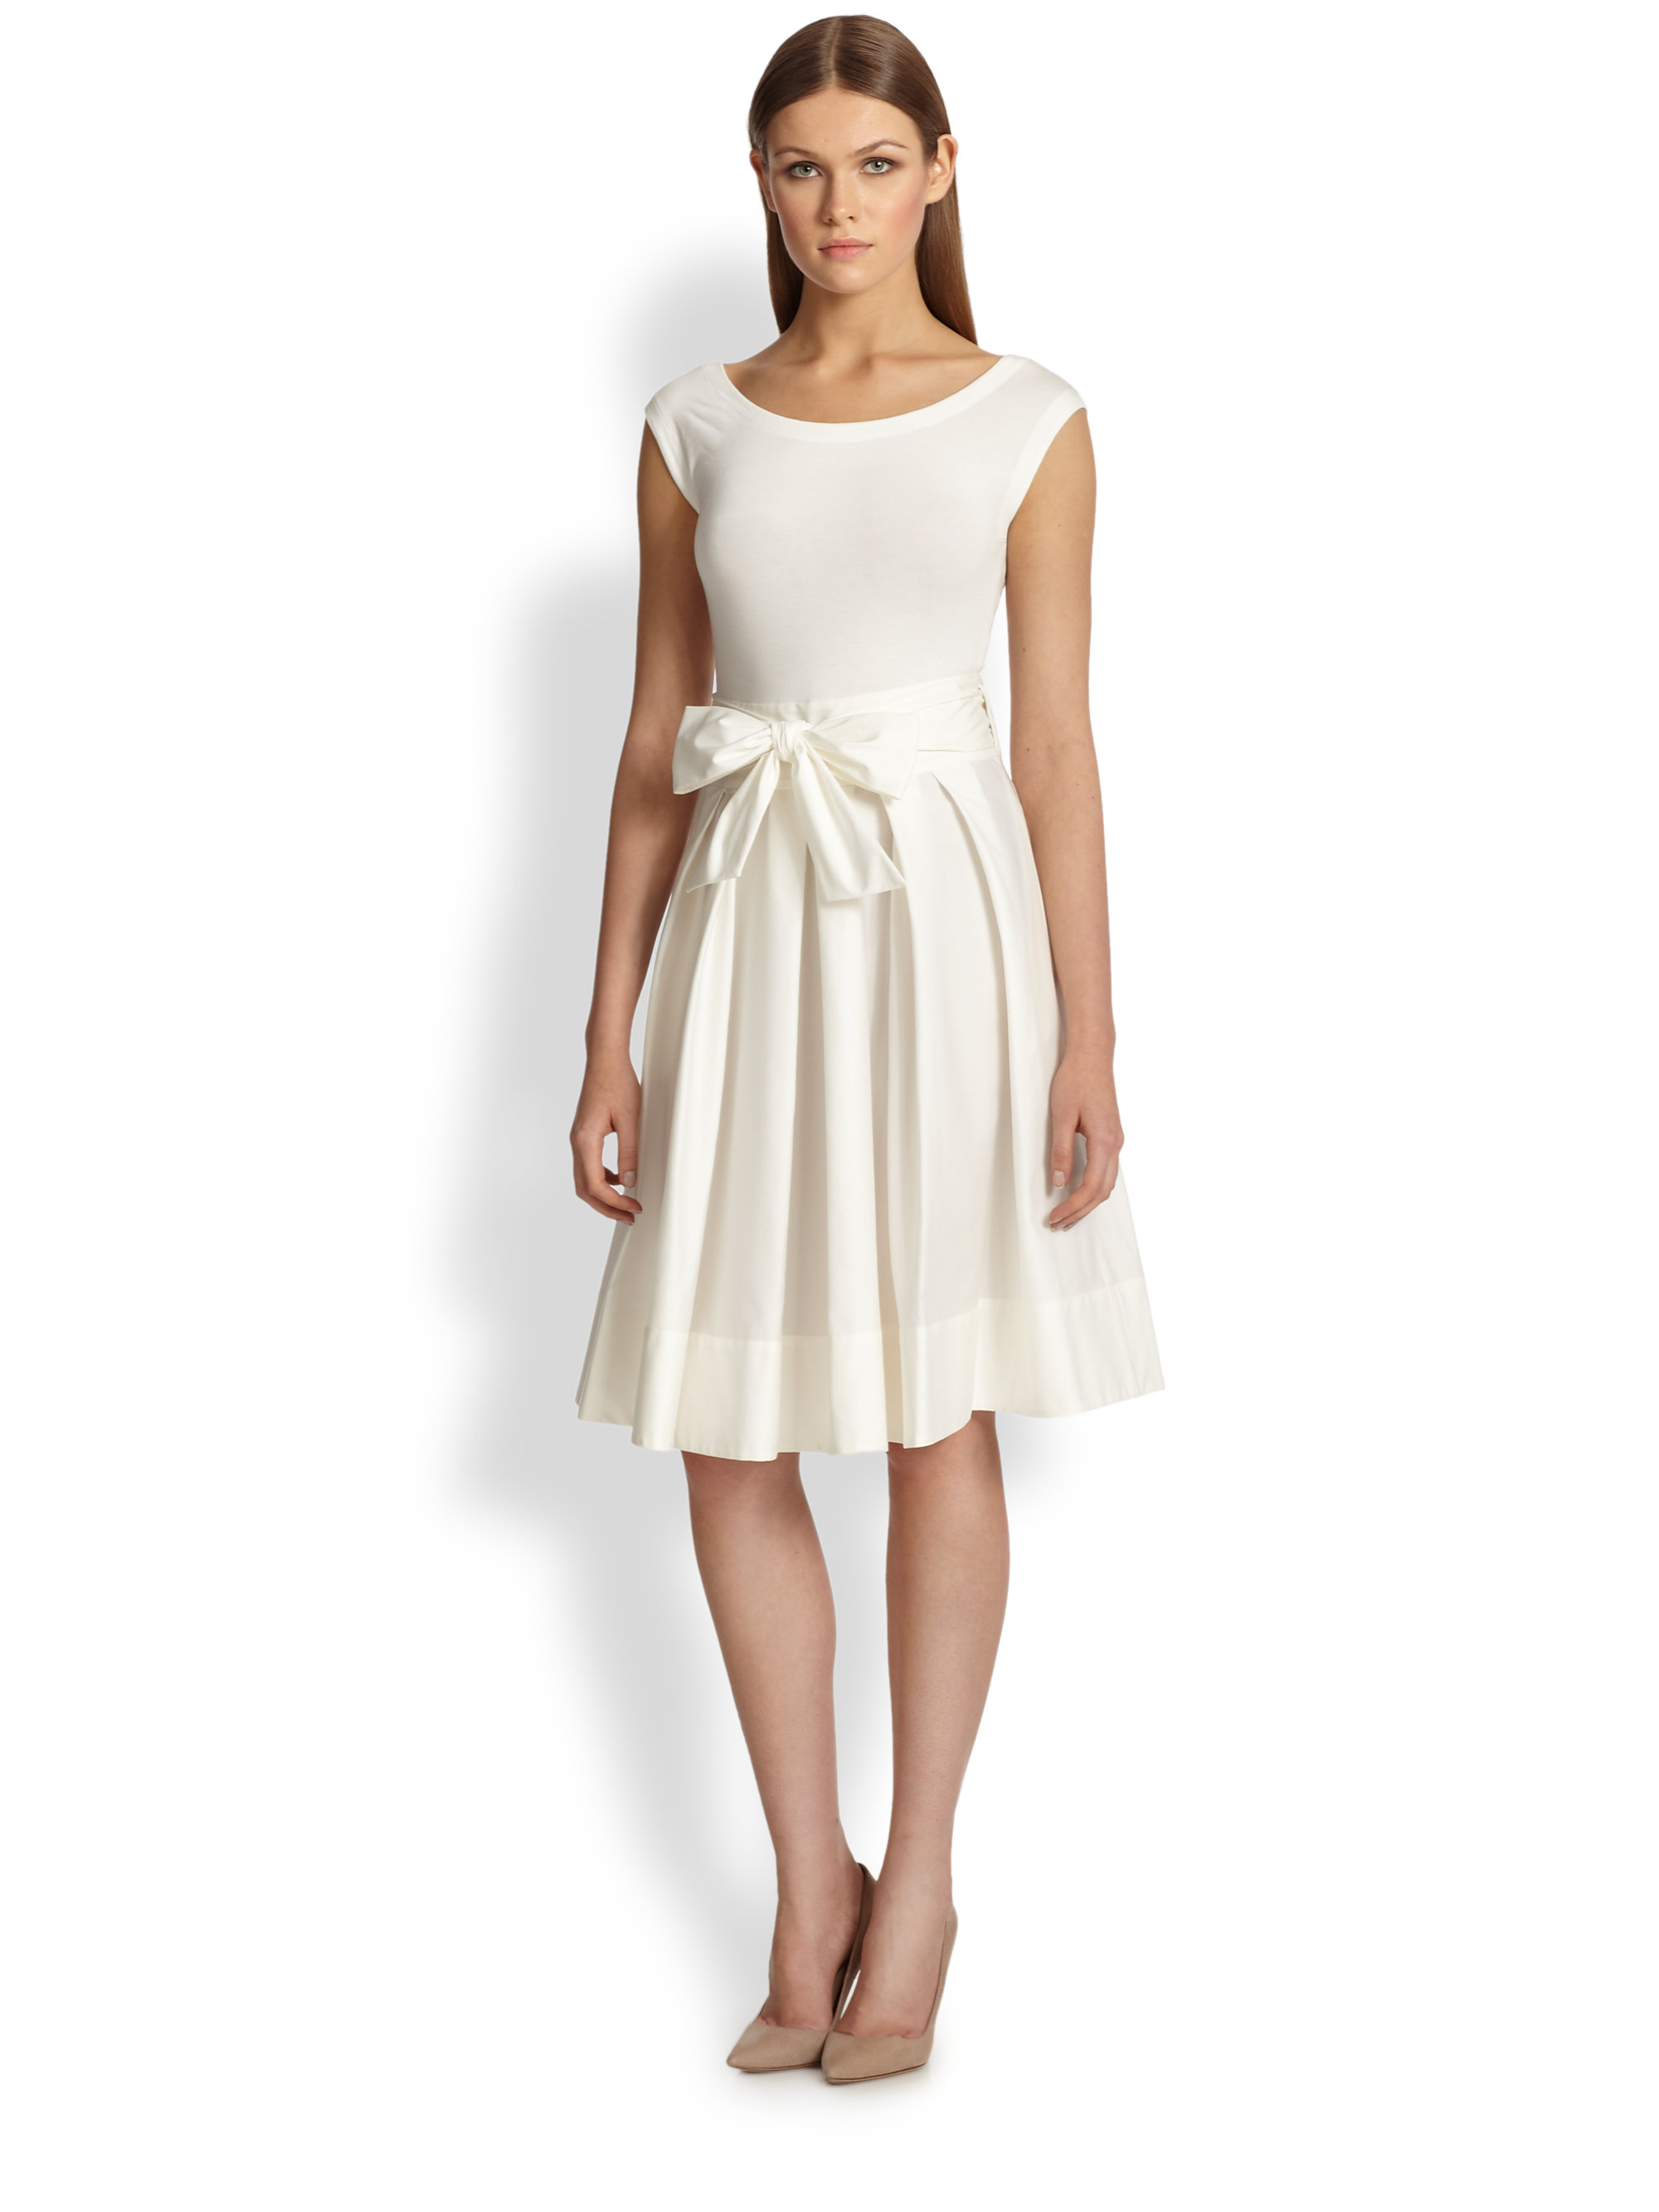 Donna karan Sash-Tie Dress in White | Lyst